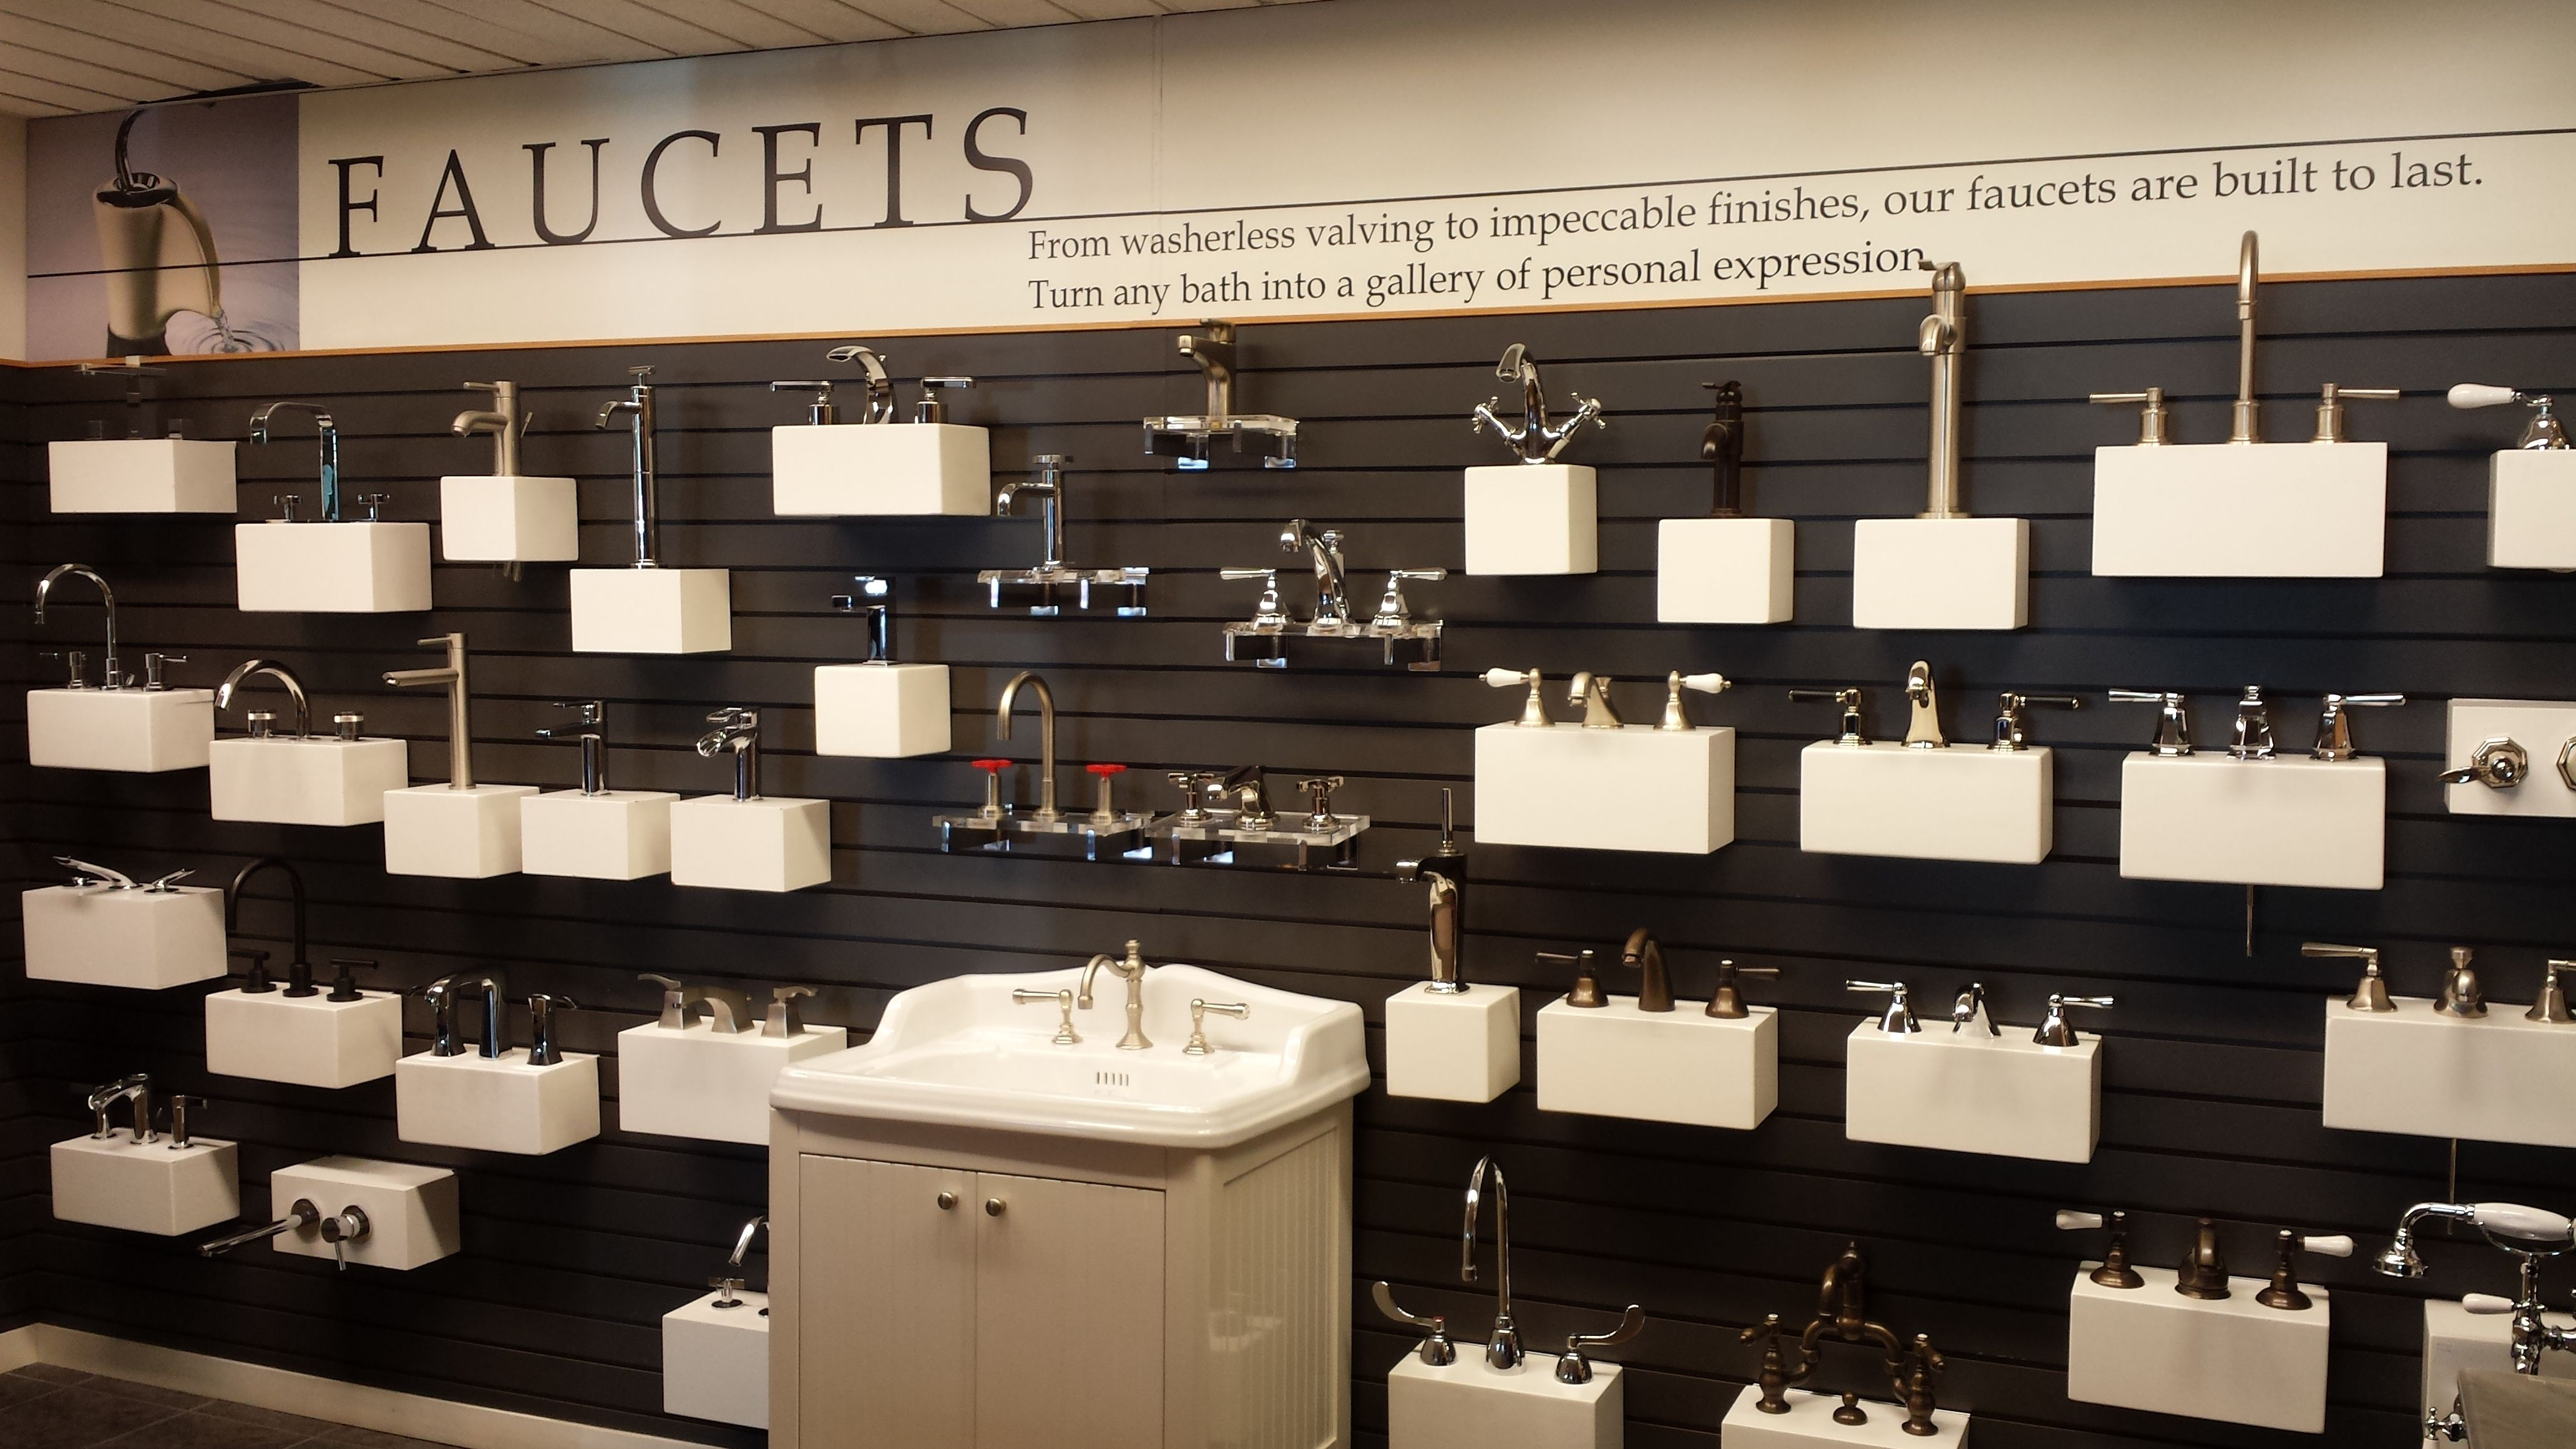 chicago kitchen faucets Lavatory faucet wall including California Faucets Jewel Rohl Sigma Kohler Graff